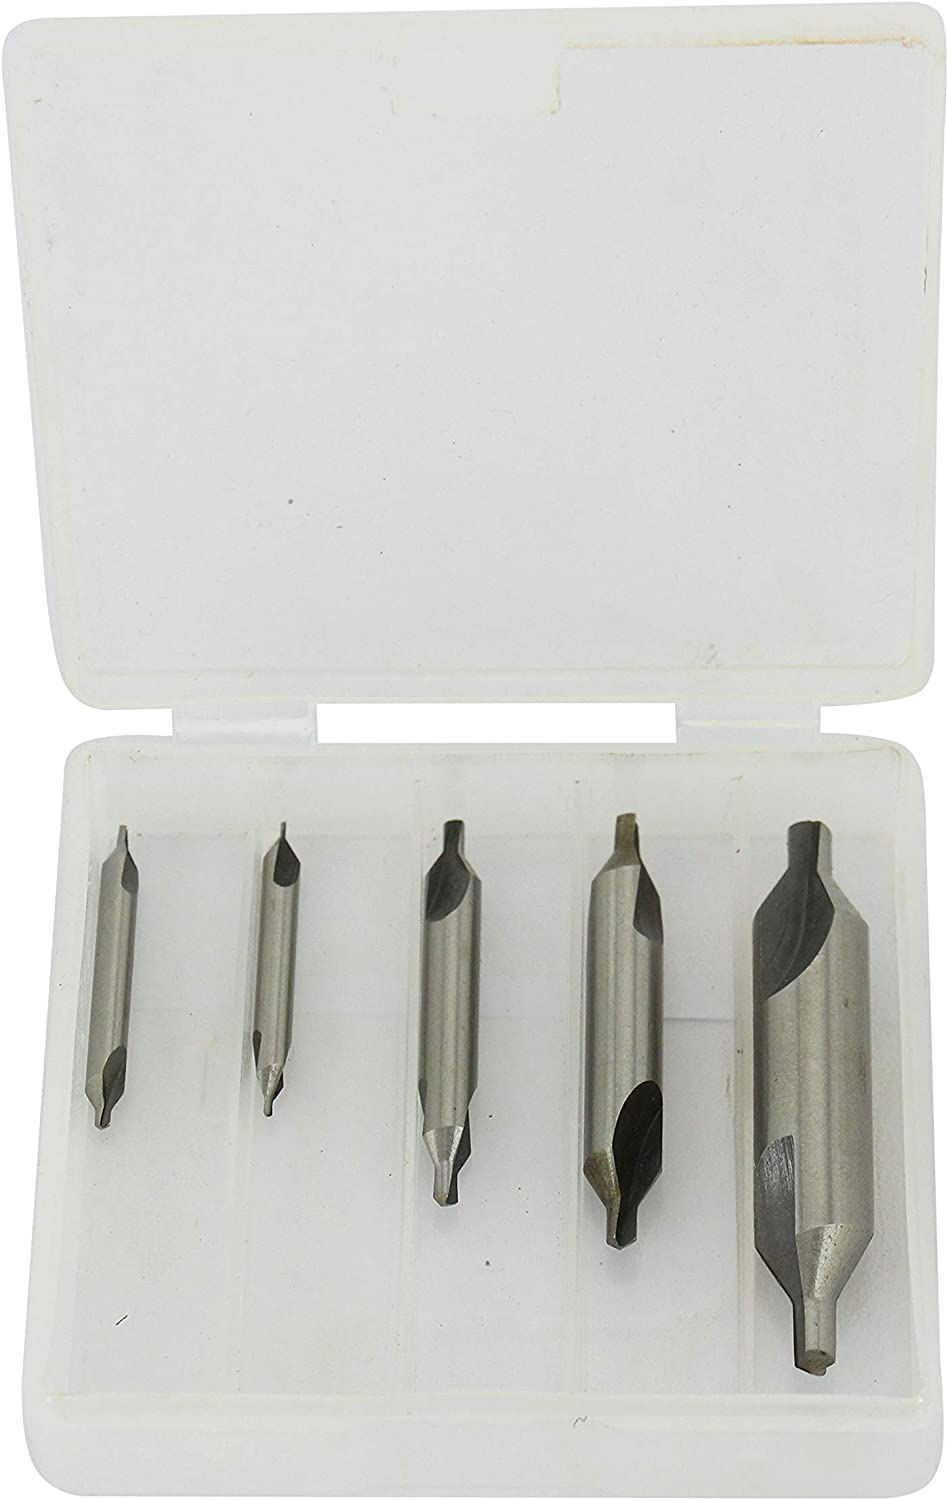 R HFS 5 Lathe Mill Center Drill Countersink Bit Tooling Set